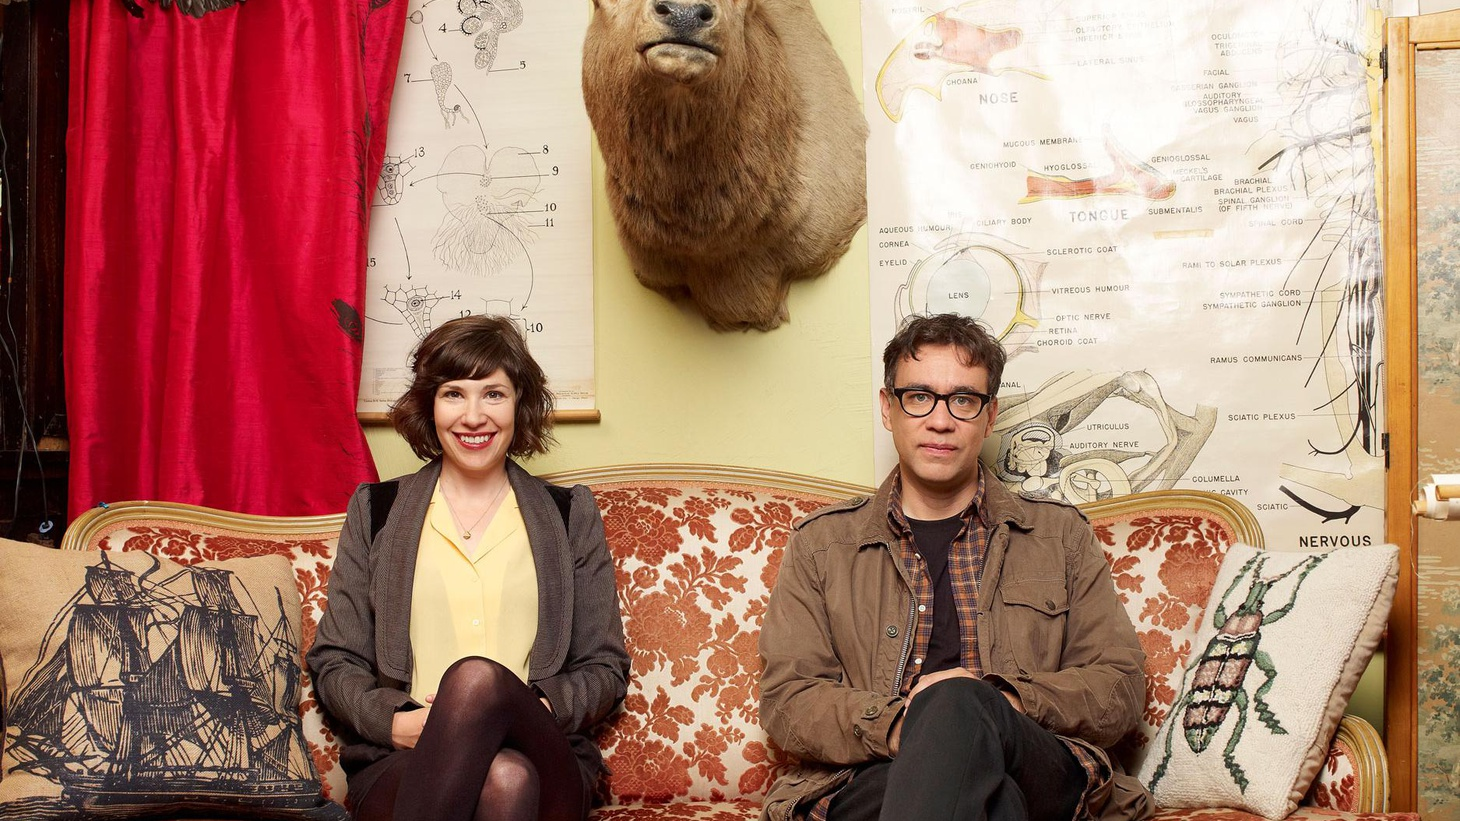 The creators and stars of 'Portlandia' talk about turning their comedy videos into IFC's biggest hit. Plus, does IMDB perpetuate ageism in Hollywood?